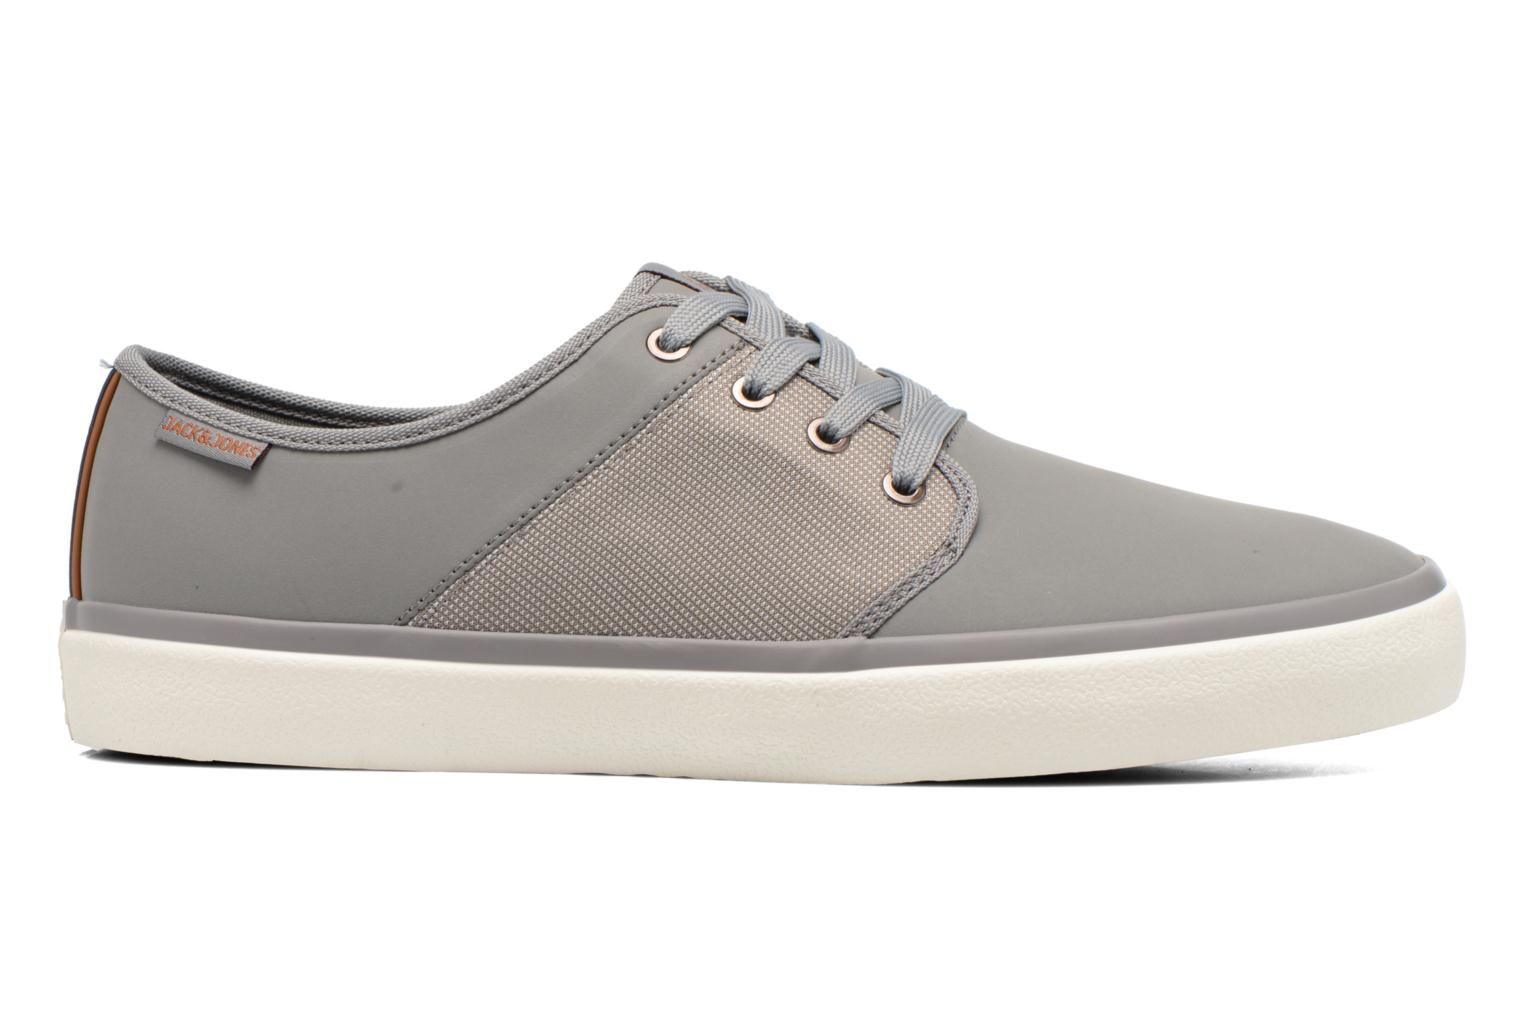 JJ Turbo PU Nylon Sneaker Grey